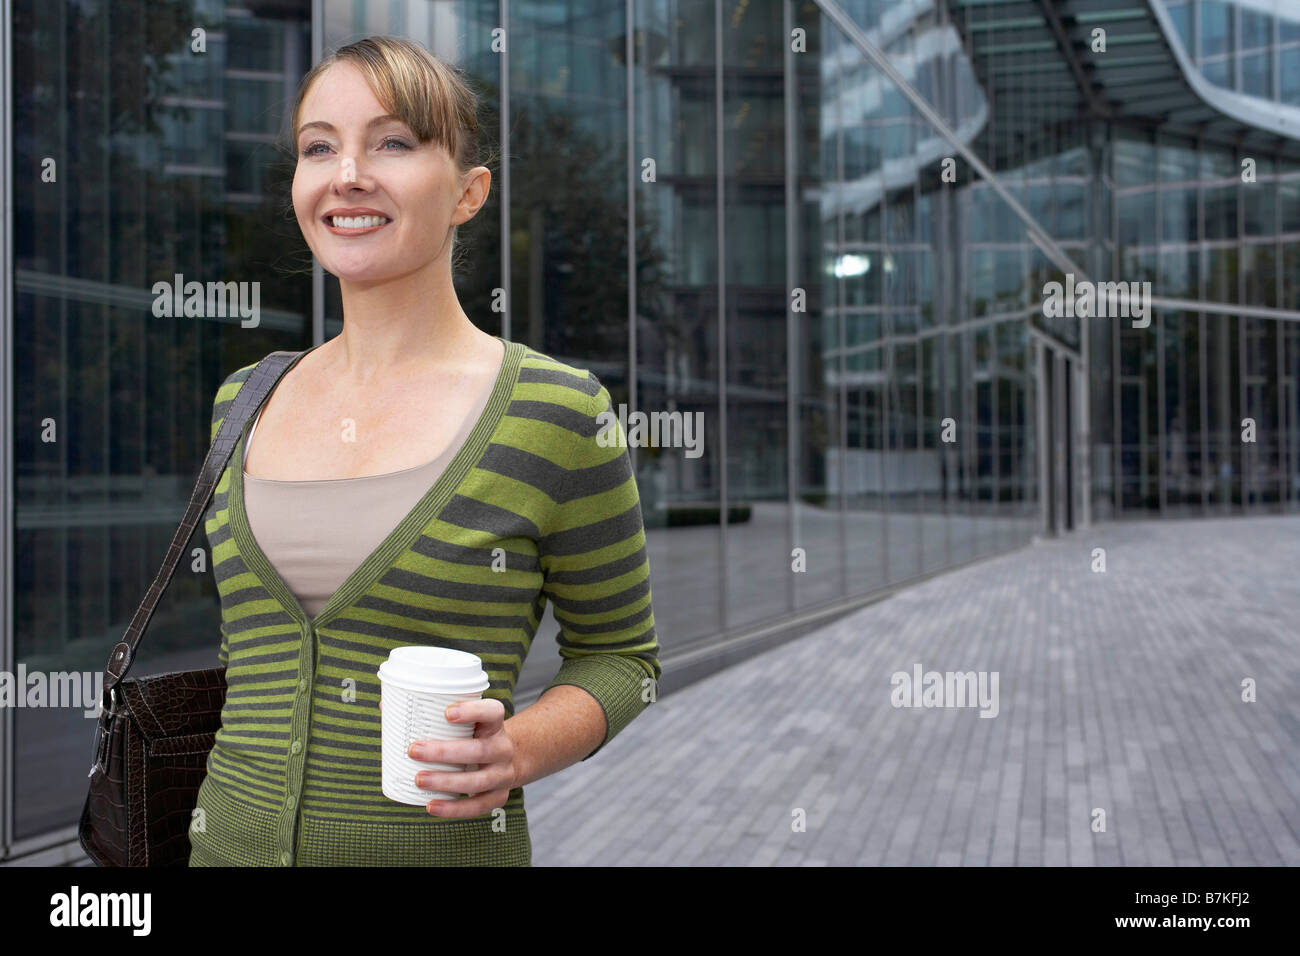 Business woman on the move - Stock Image